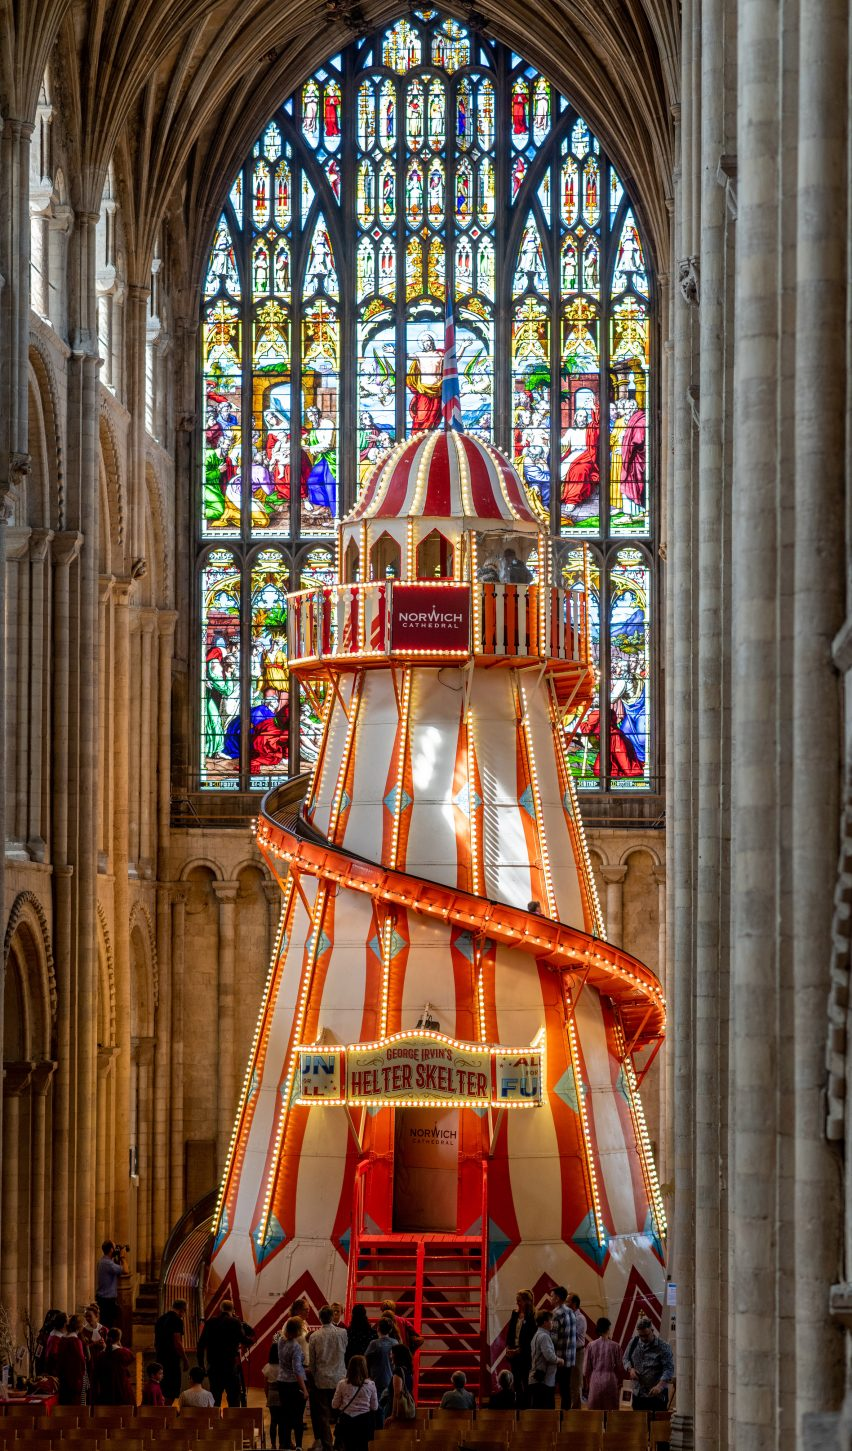 Helter skelter in Norwich Cathedral as part of its Seeing It Differently campaign